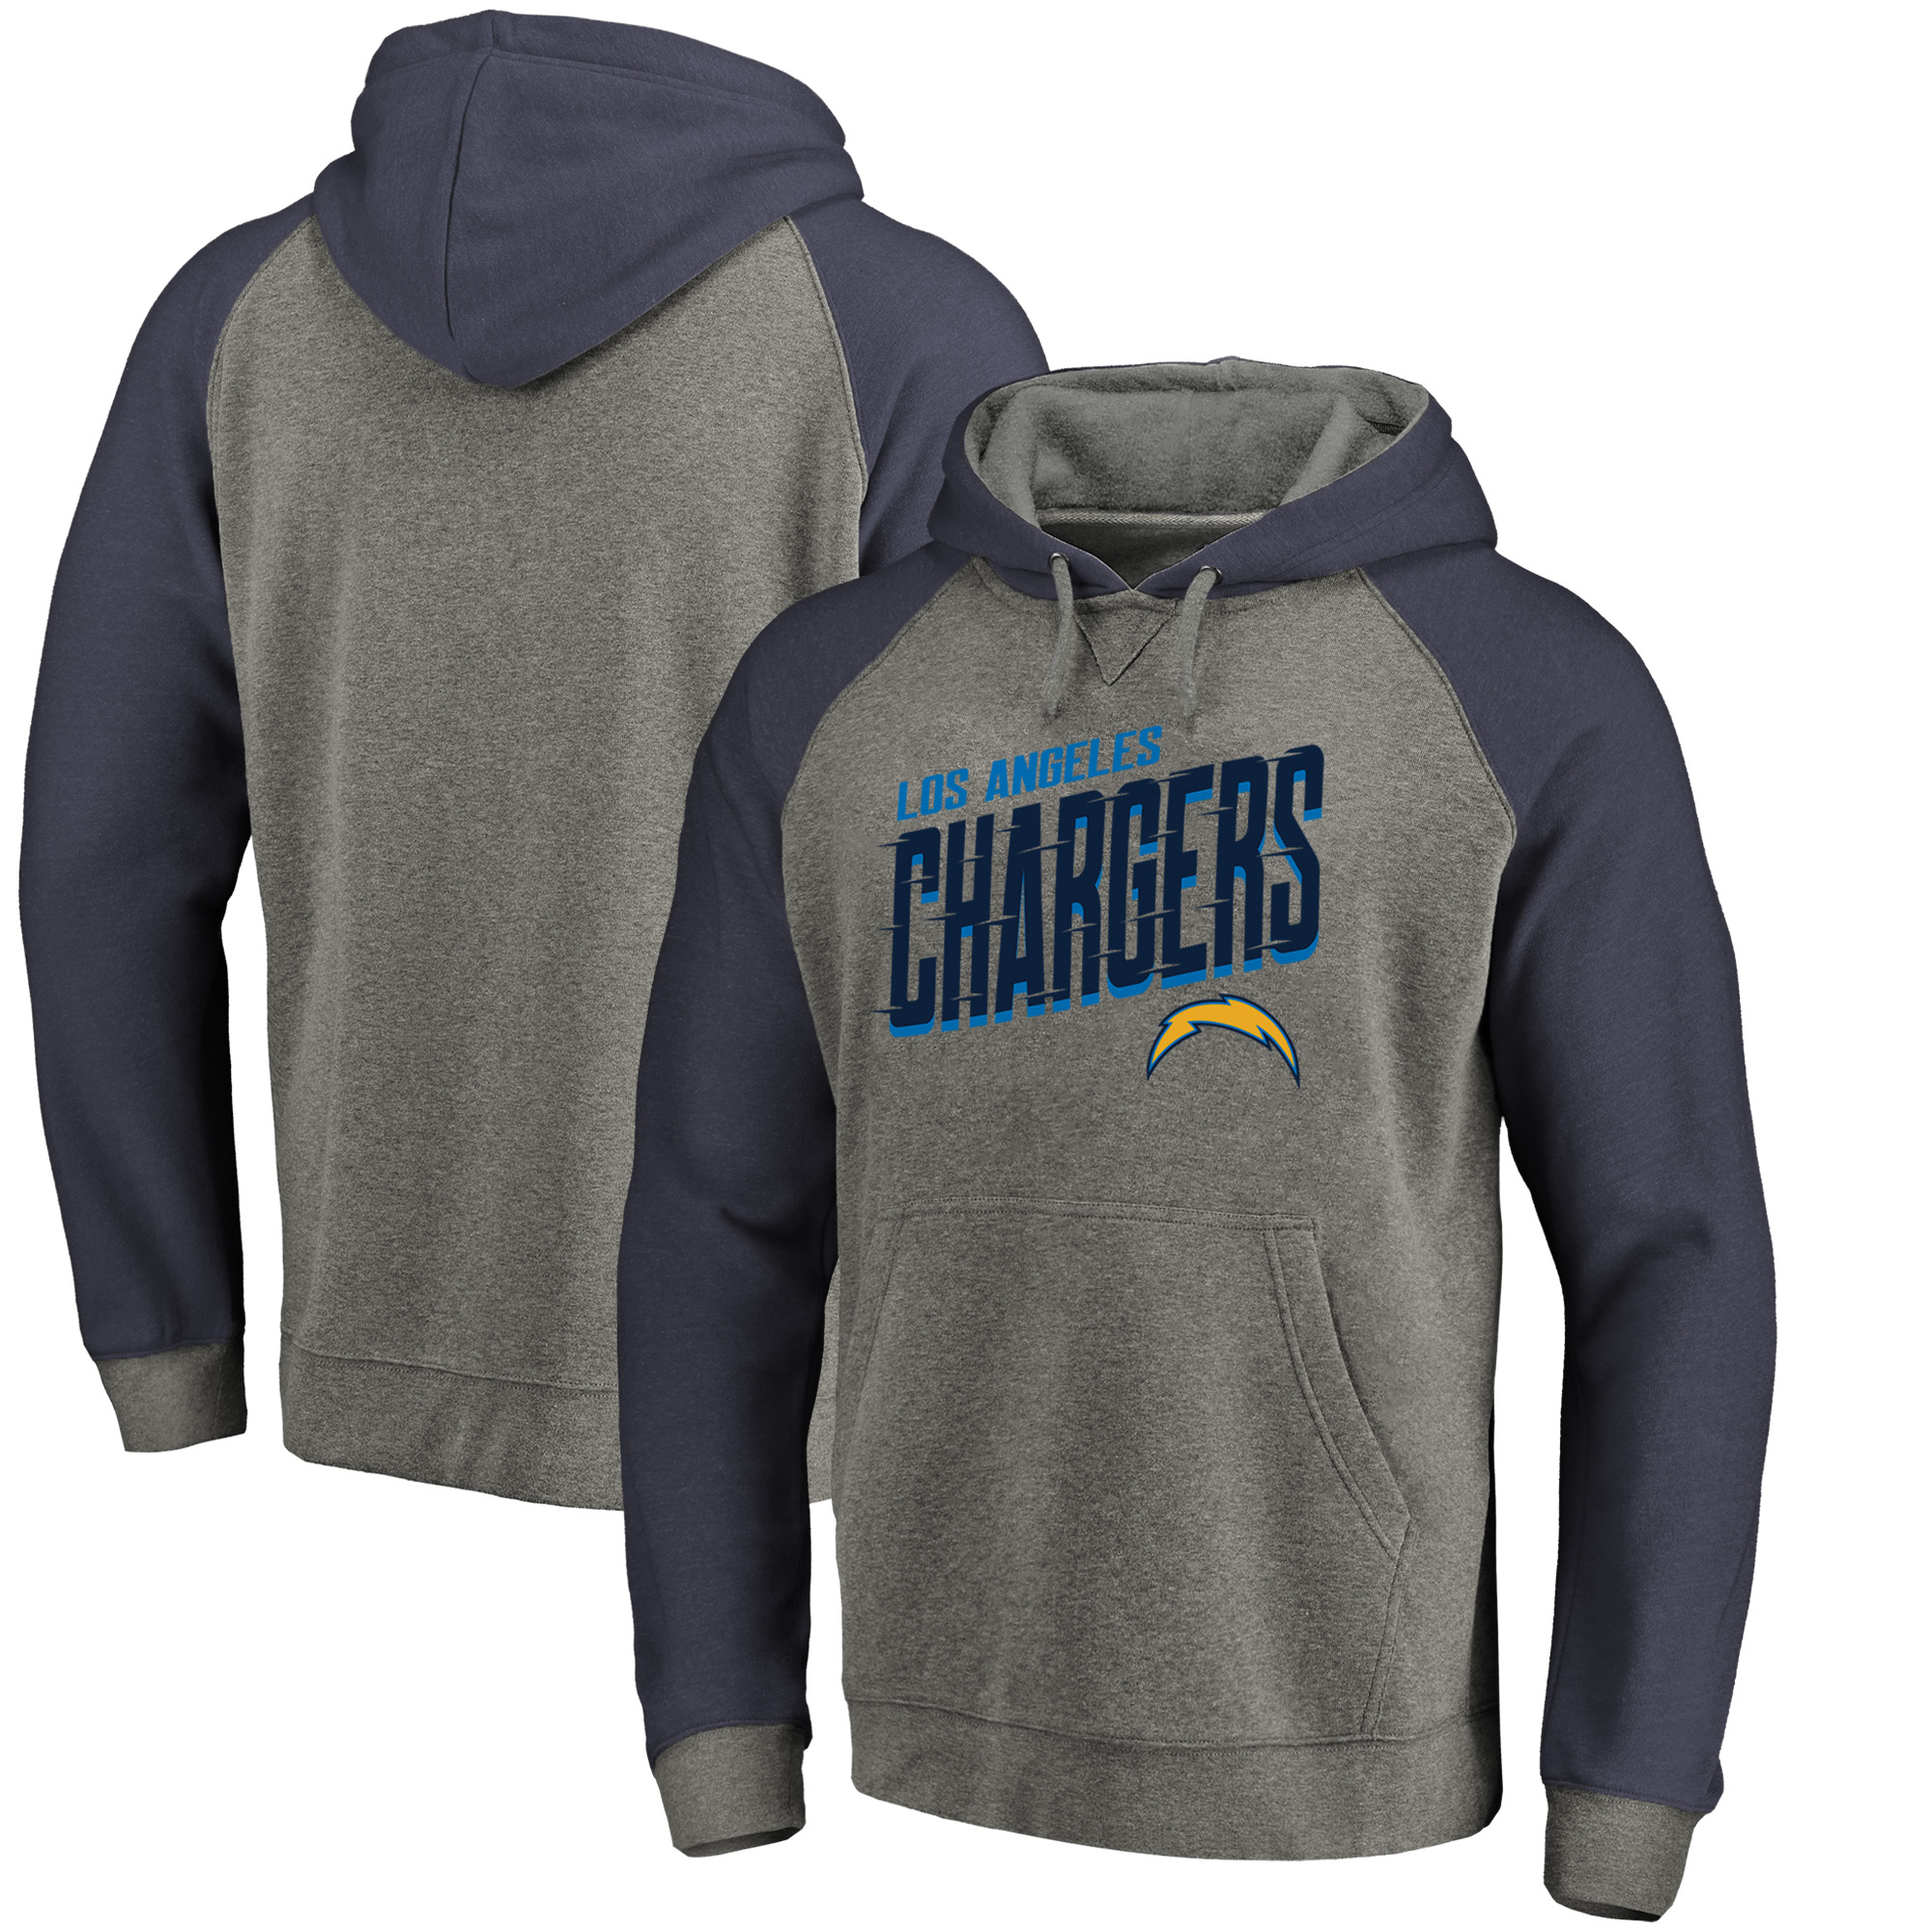 Los Angeles Chargers NFL Pro Line by Fanatics Branded Slant Strike Tri-Blend Raglan Pullover Hoodie - Heathered Gray